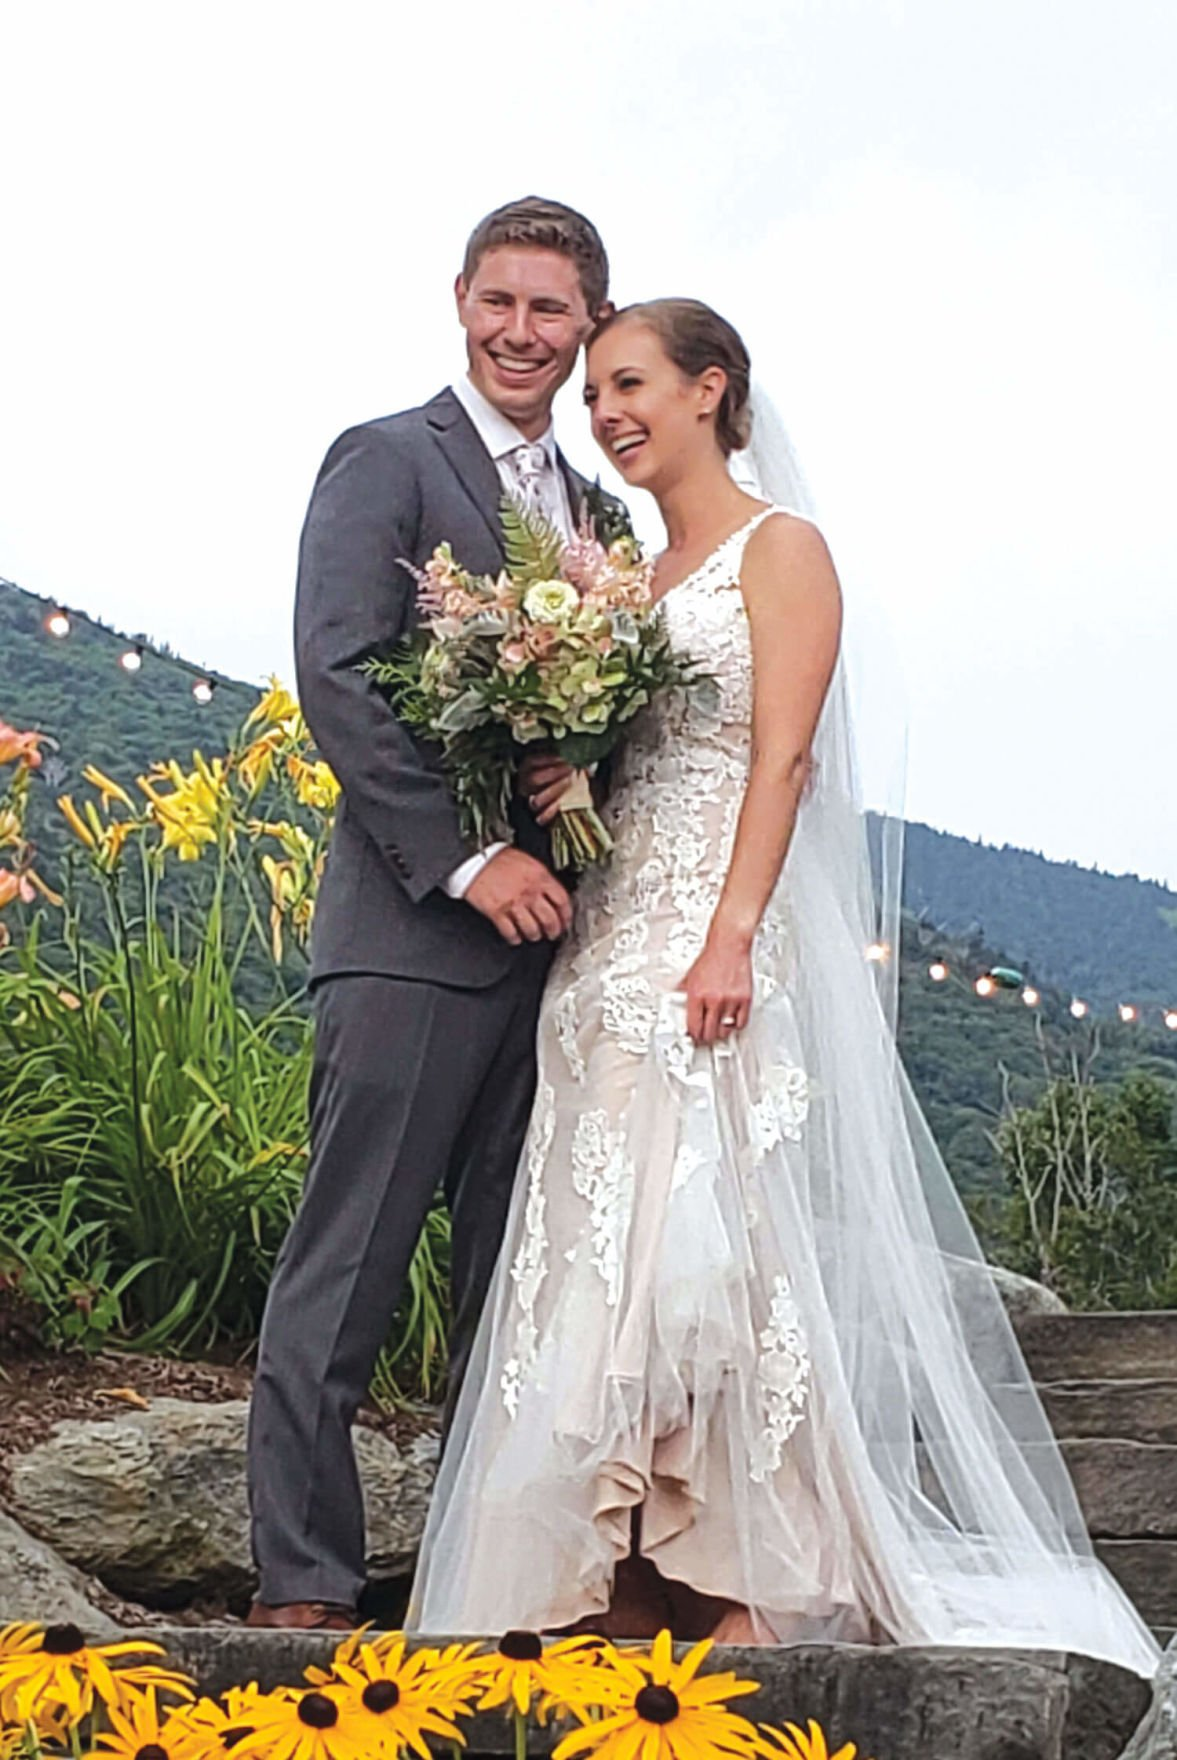 Congratulations Travis and Emily!